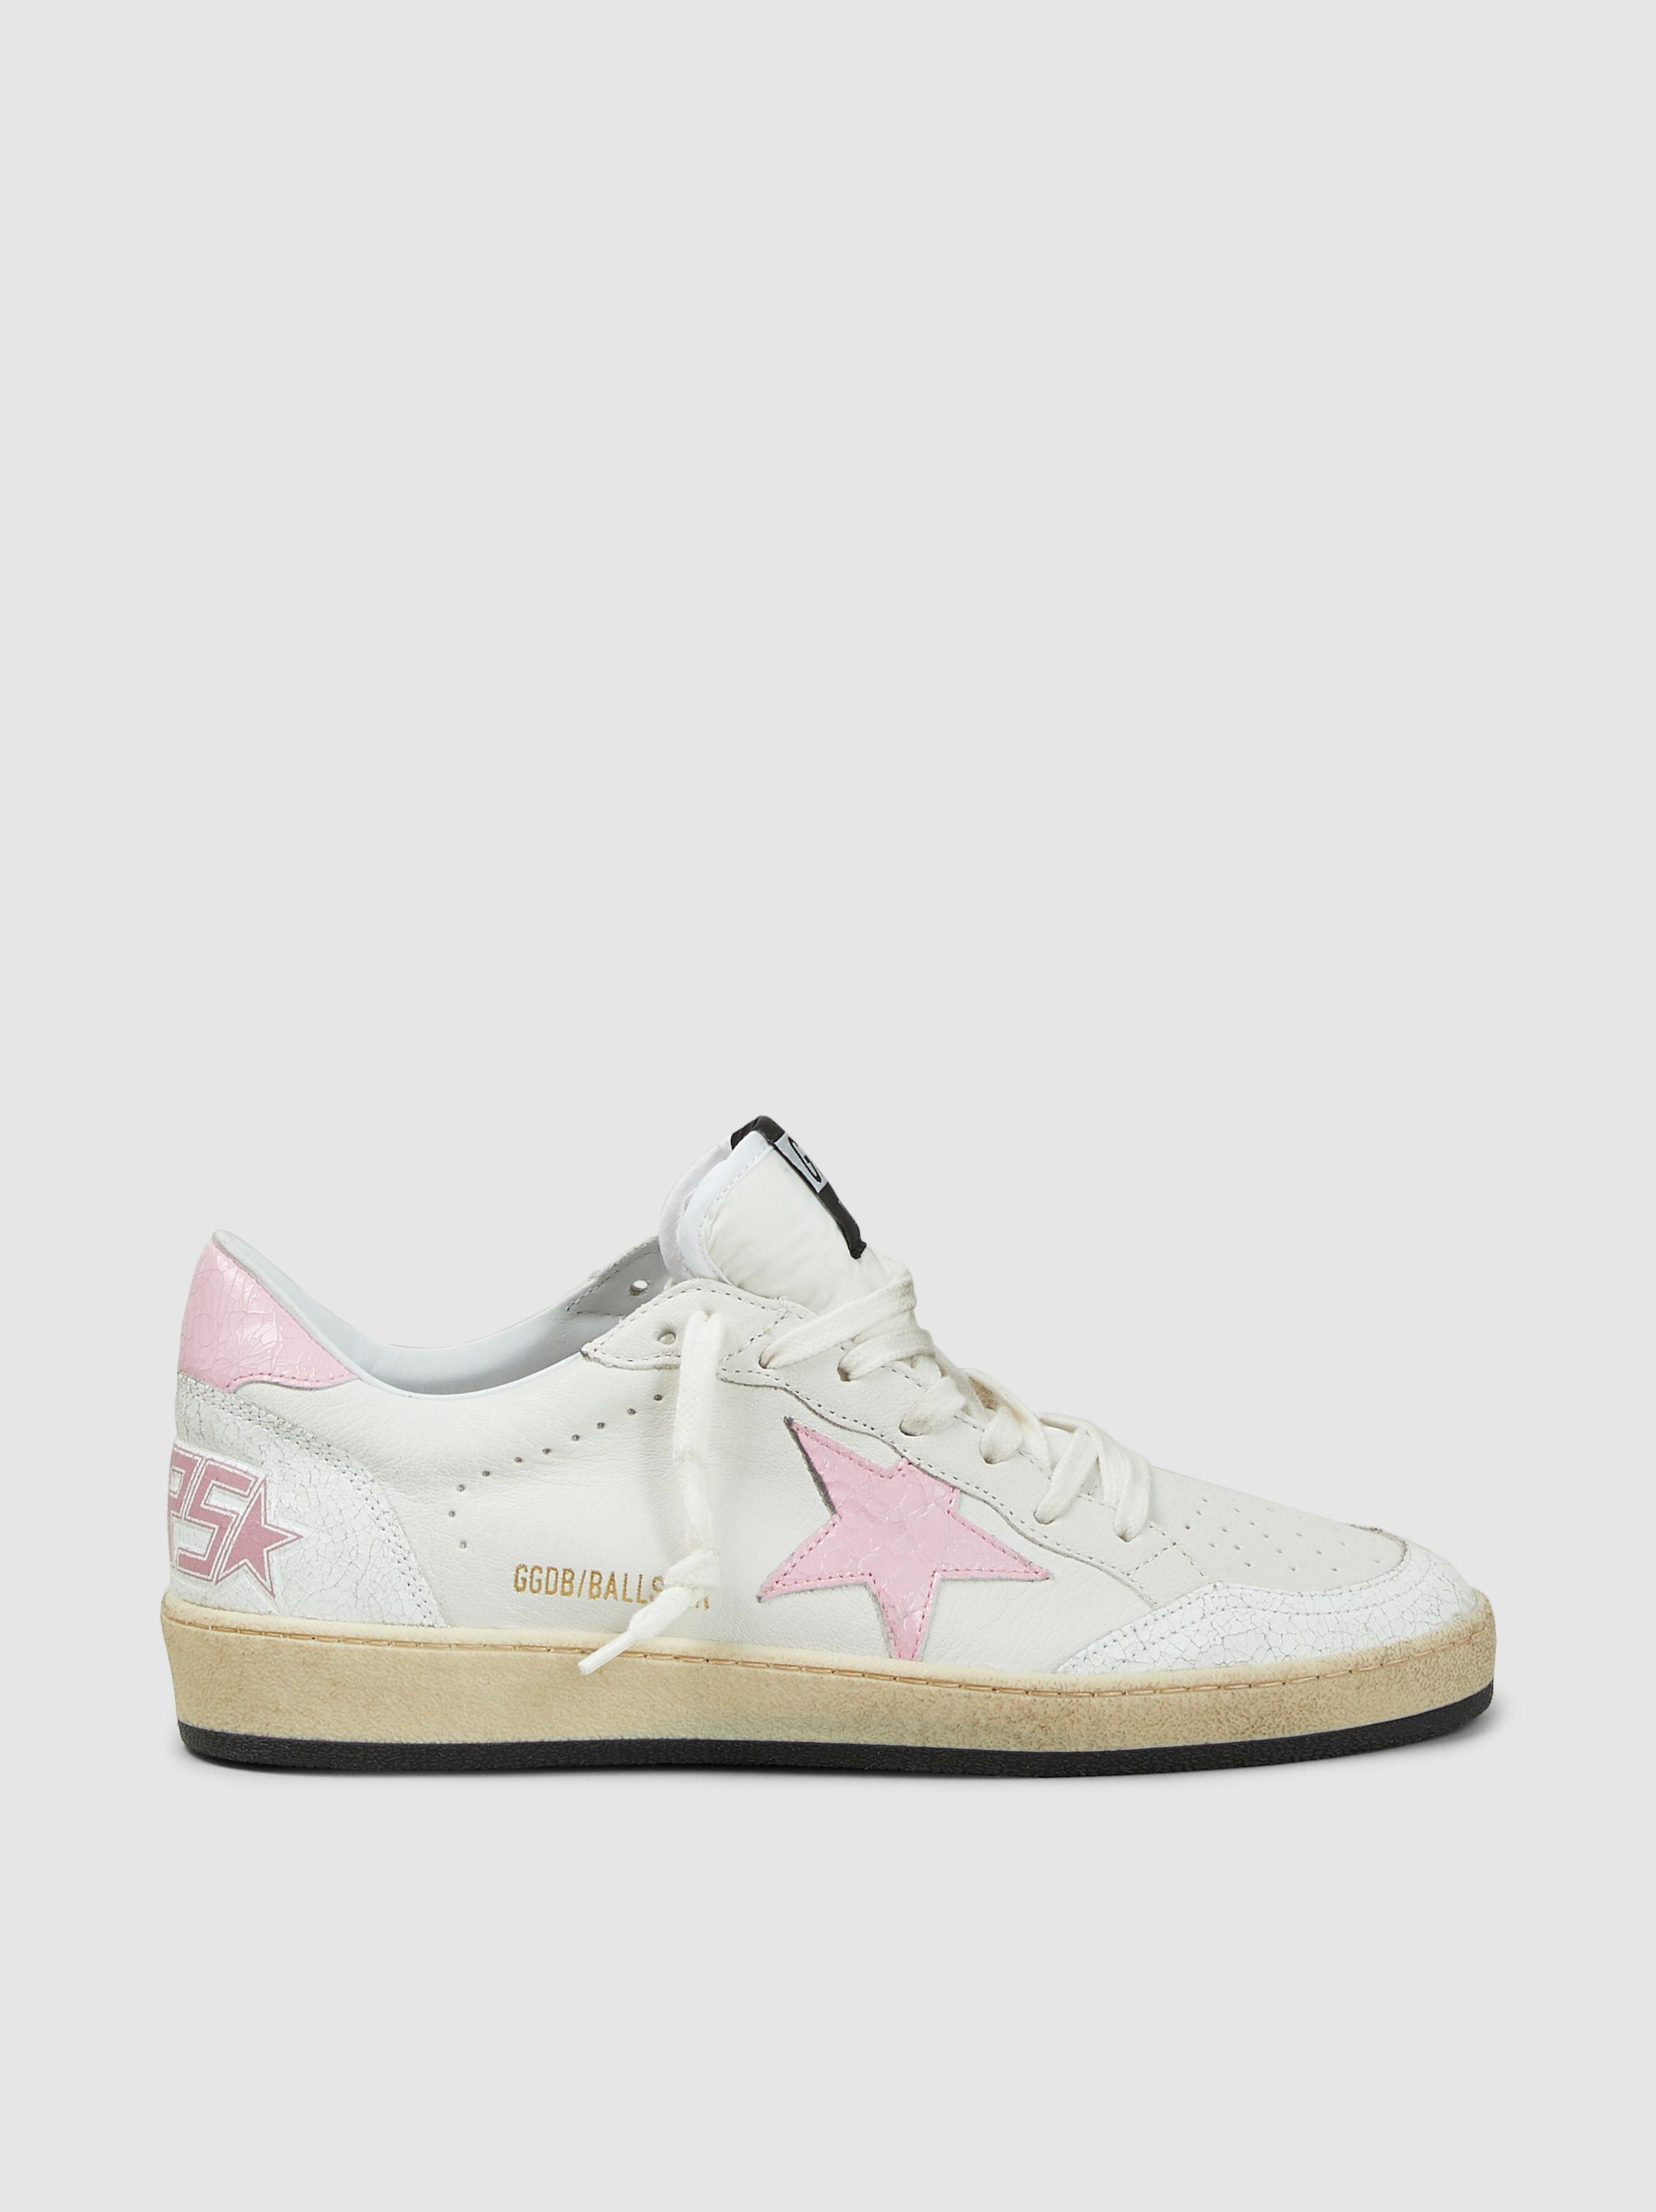 ff0eba2cf470d Lyst - Golden Goose Deluxe Brand Low-top Ball Star Sneakers in White